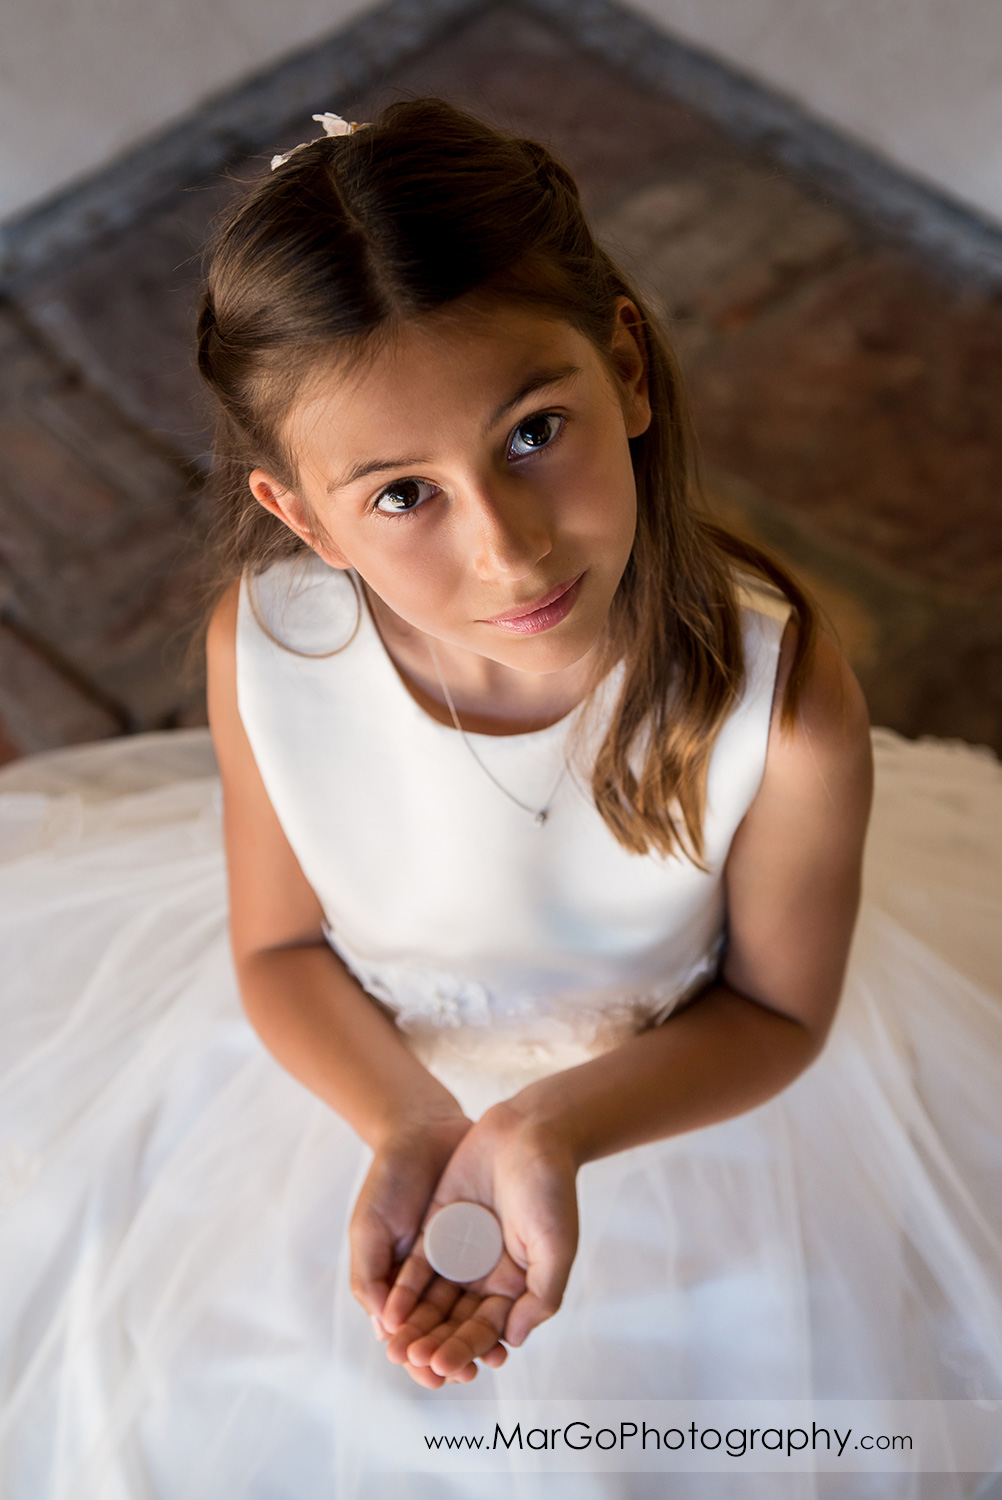 first communion girl in white dress holding wafer and looking into camera at Cafe Wisteria in Menlo Park